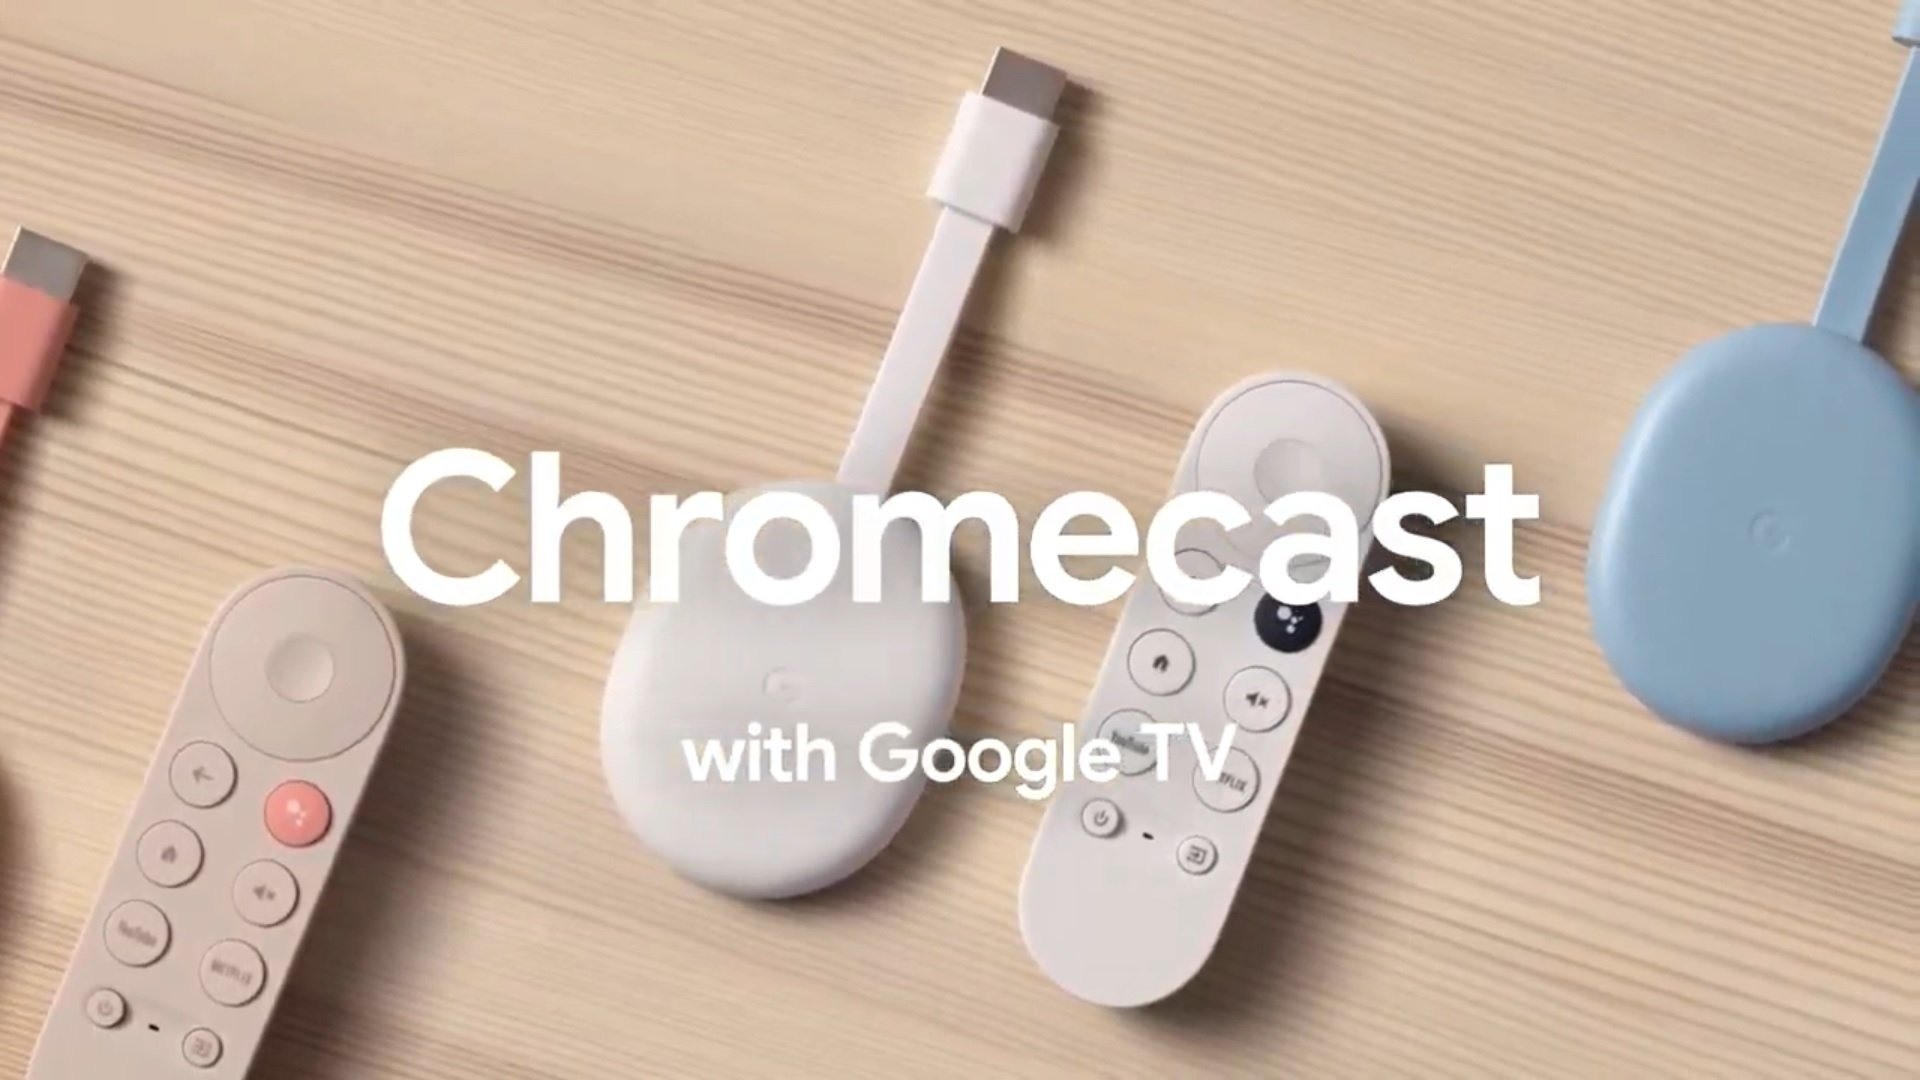 chromecast with google tv